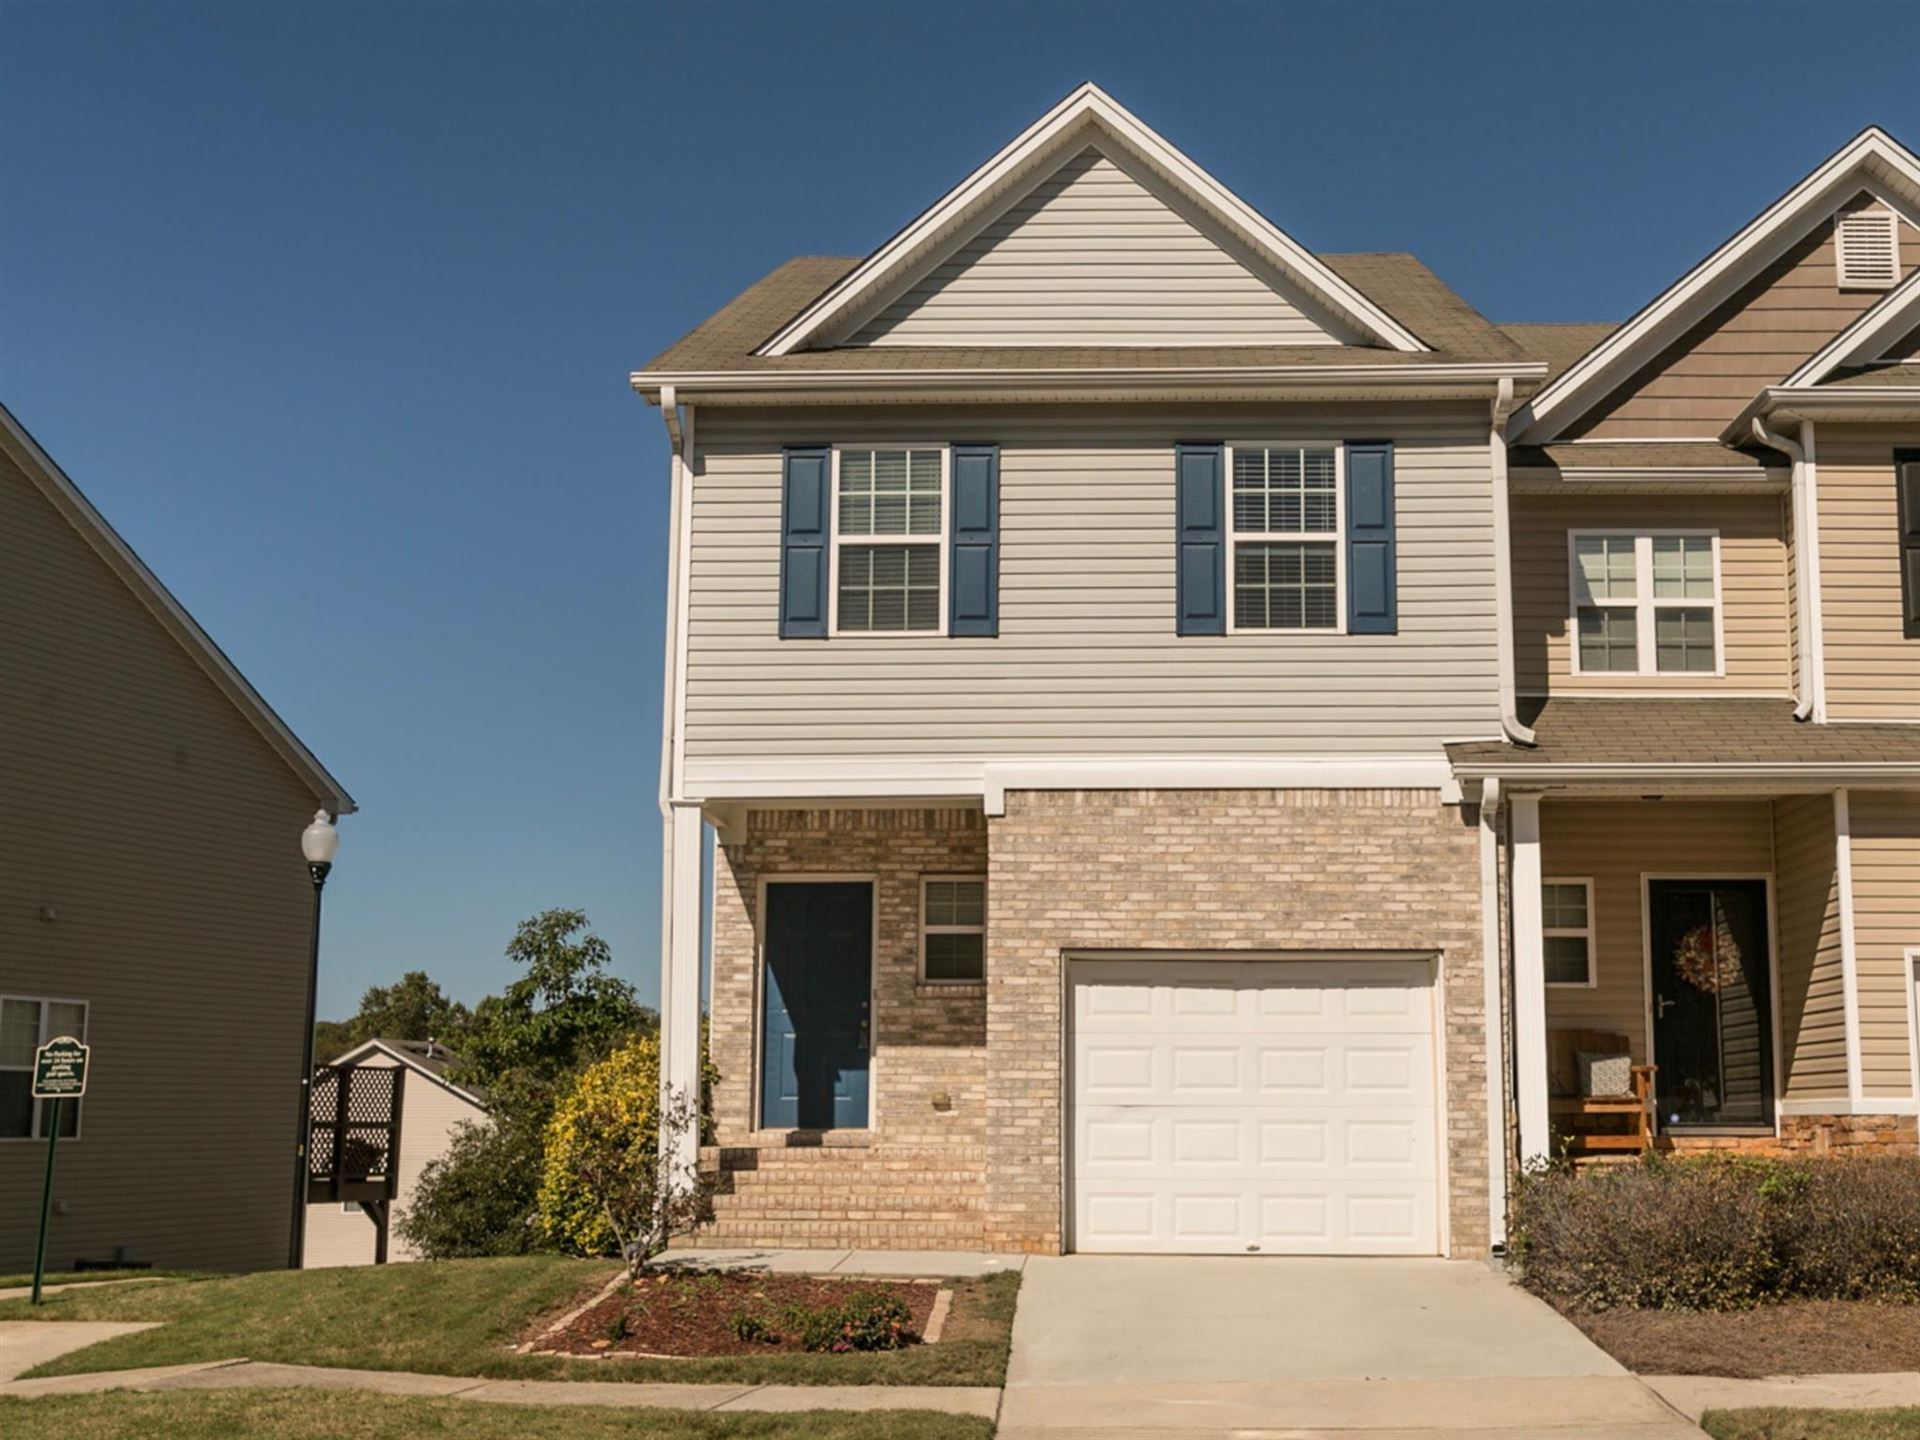 4654 Beacon Ridge Ln, Flowery Branch, GA 30542 - #: 8874314